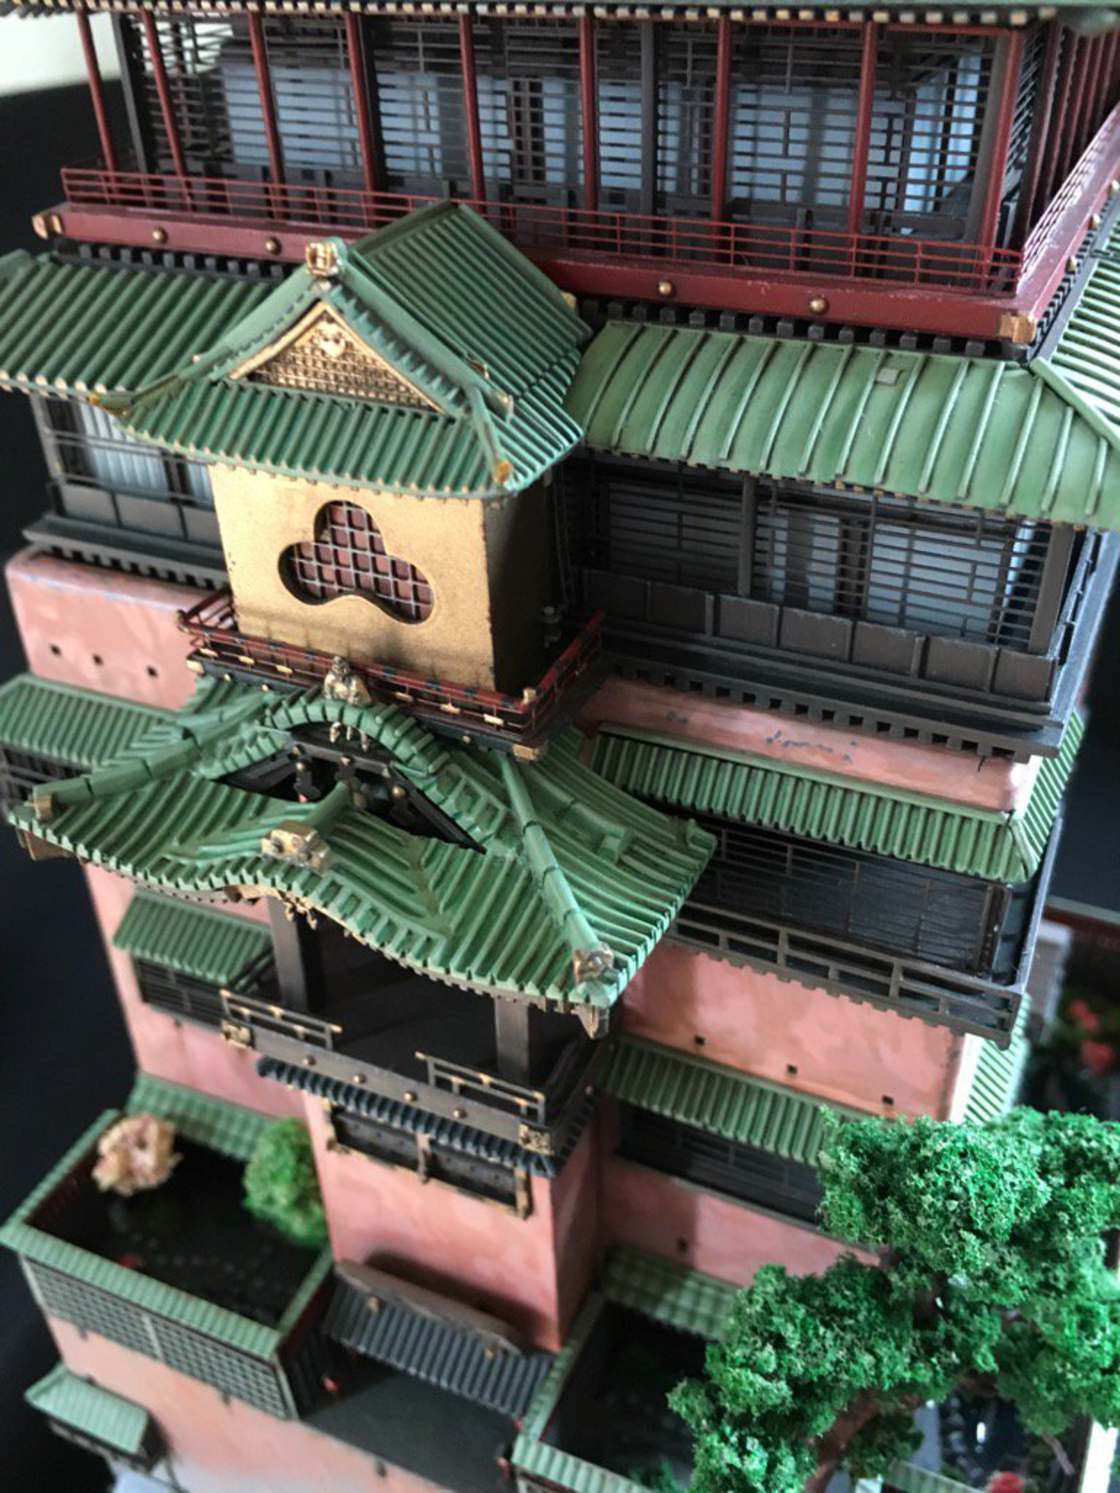 Spirited Away - A Miyazaki fan recreated the bathing house with an impressive model